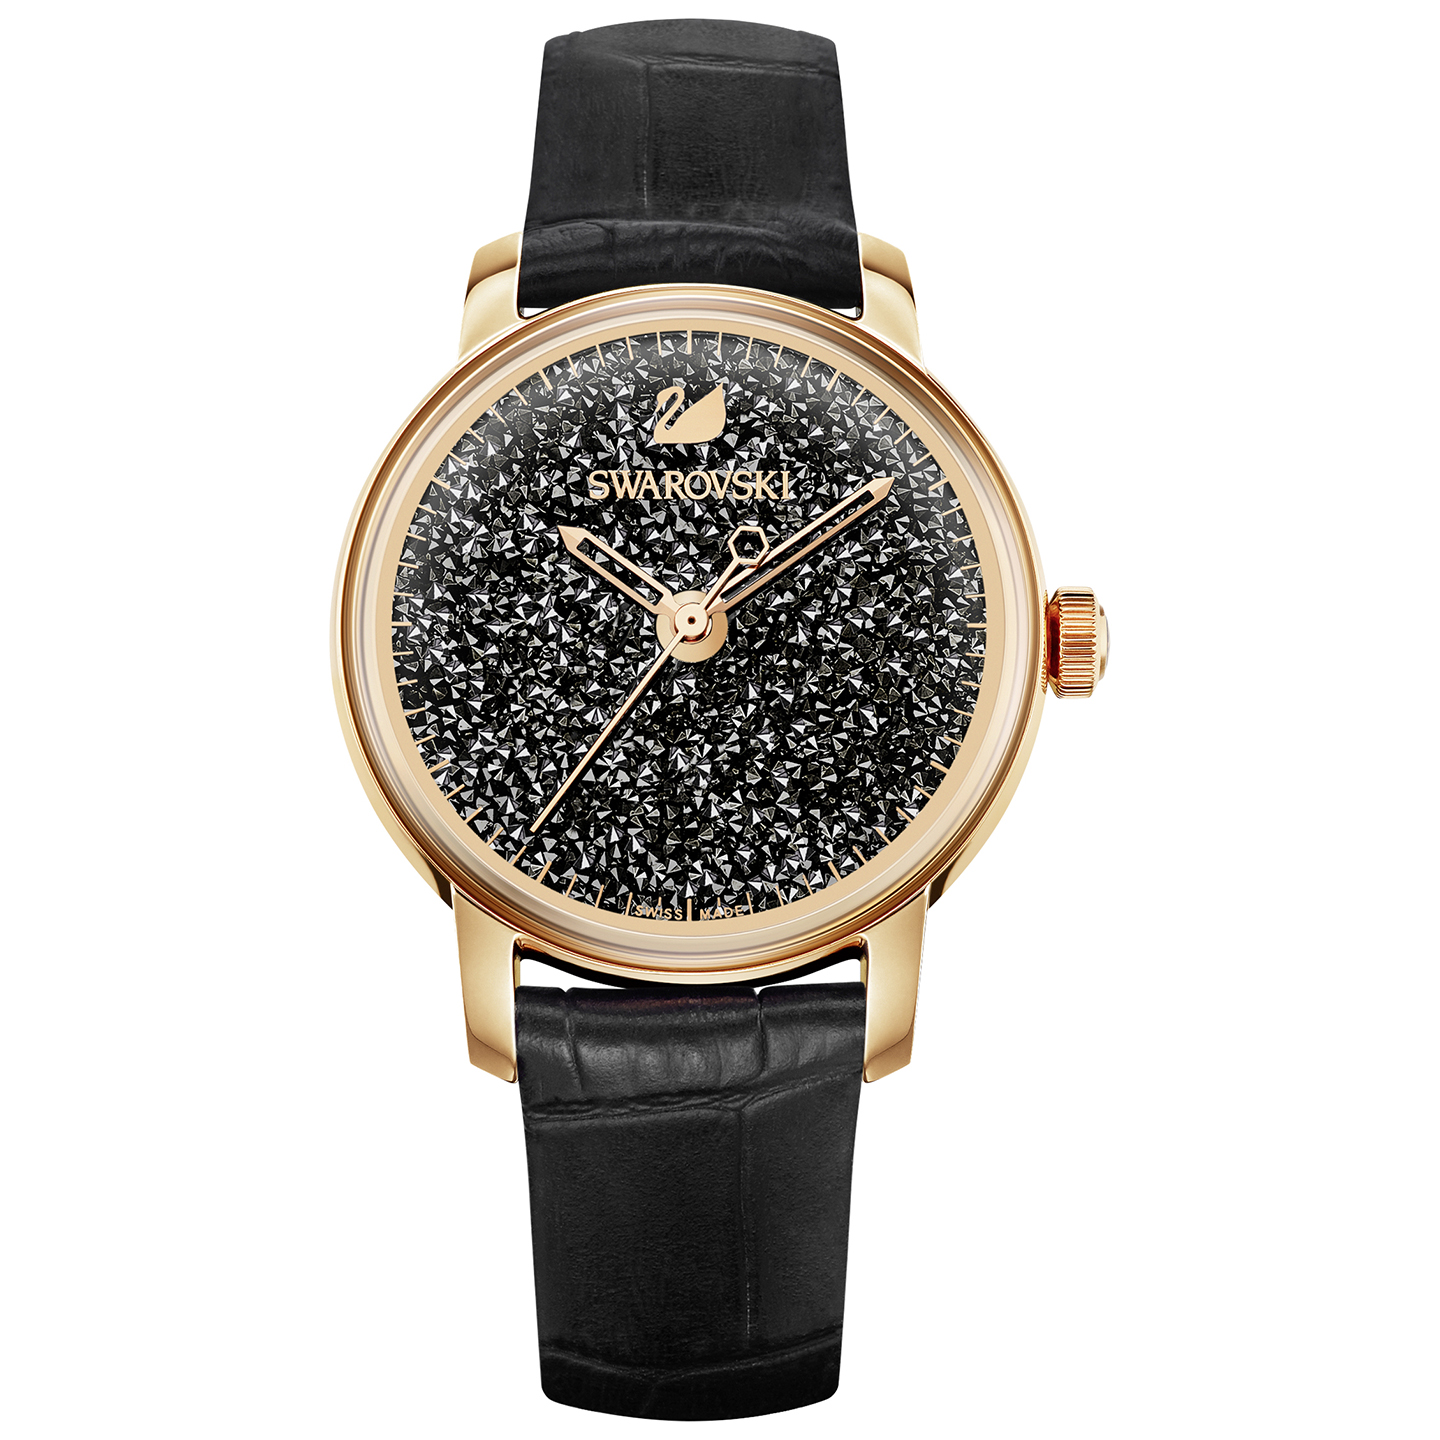 Swarovski Crystalline Hours Watch - Leather Strap - Black - Rose gold tone